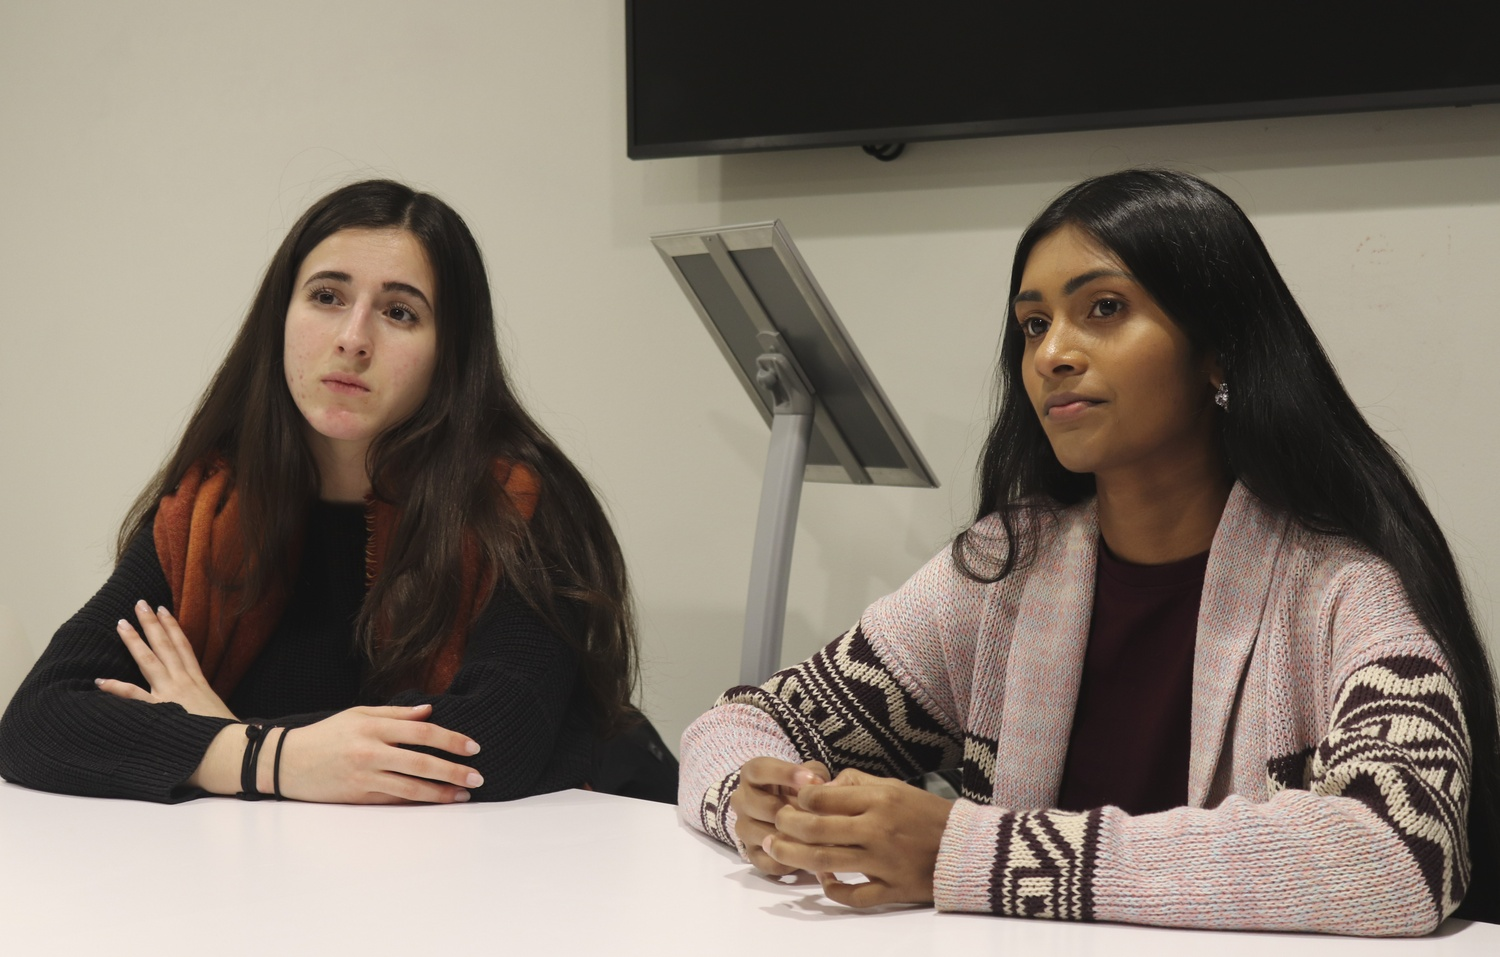 Sruthi Palaniappan '20 and Julia M. Huesa '20, President and Vice President of the Undergraduate Council, pictured here in January 2019.